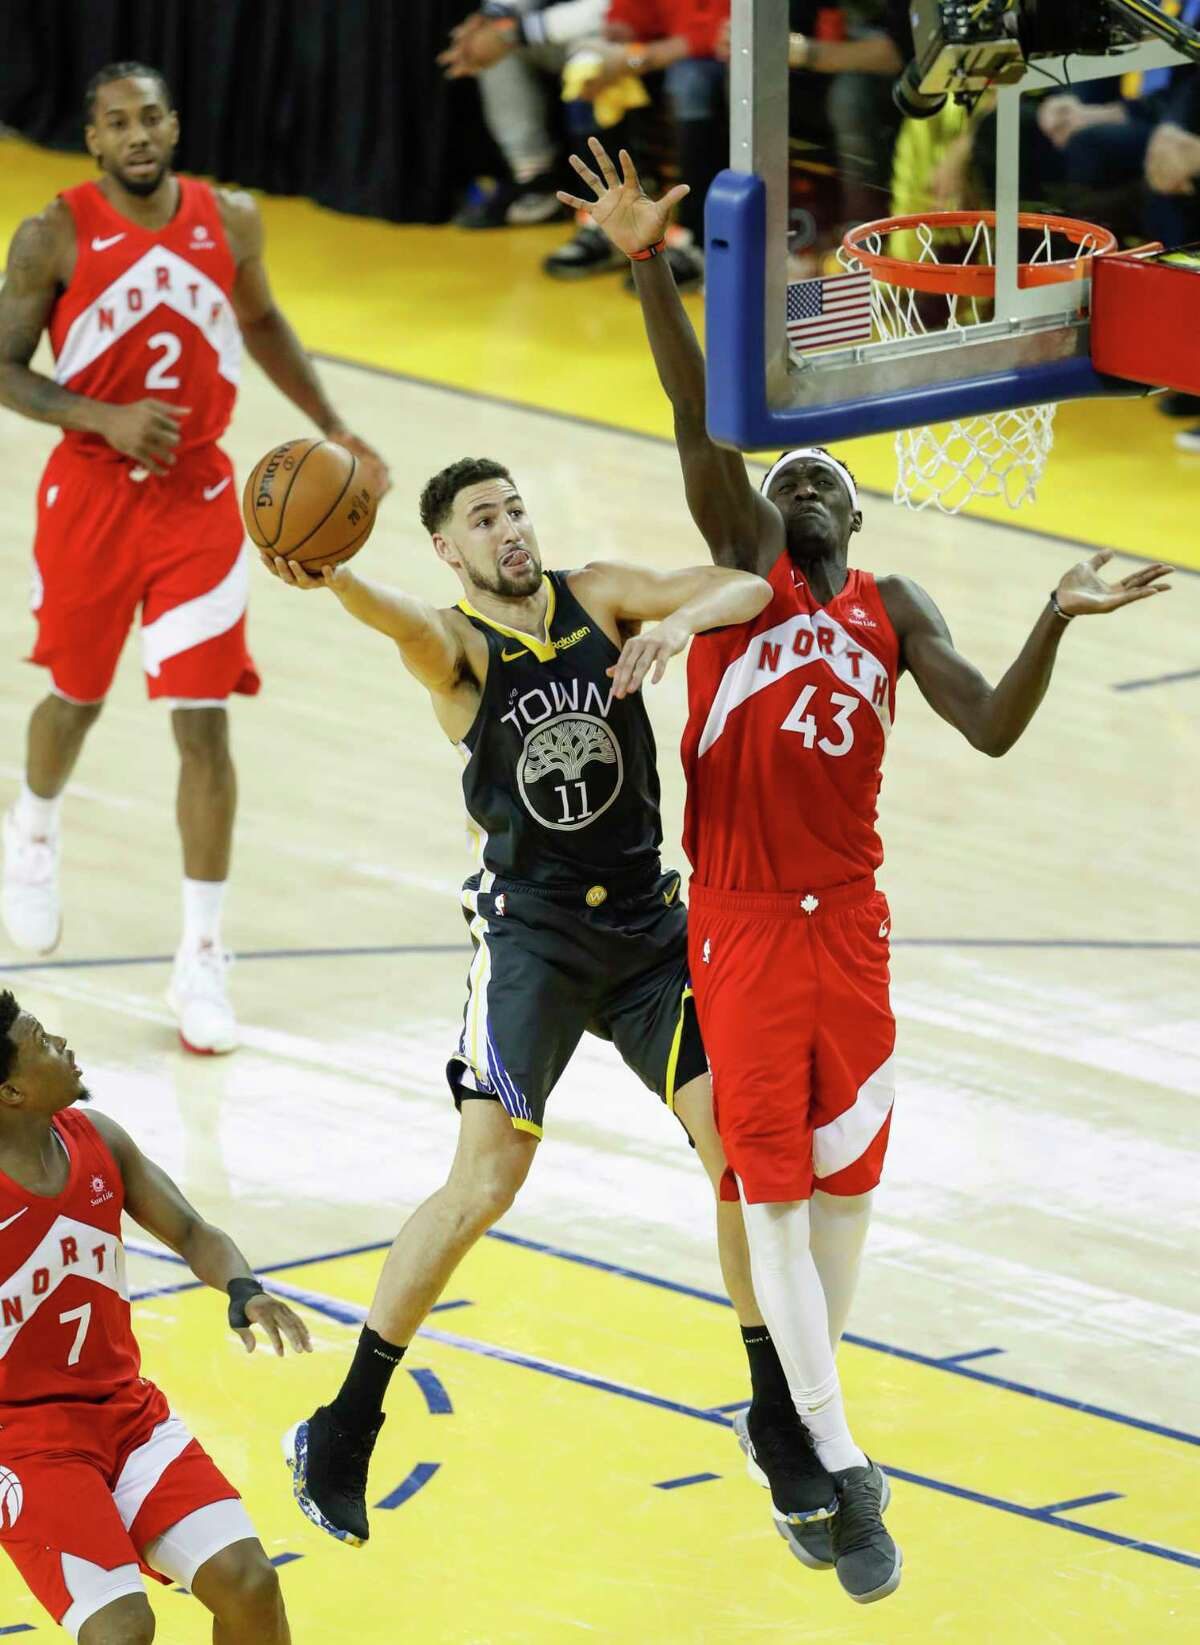 Golden State Warriors' Klay Thompson shoots against Toronto Raptors' Pascal Siakam in the third quarter during game 6 of the NBA Finals between the Golden State Warriors and the Toronto Raptors at Oracle Arena on Thursday, June 13, 2019 in Oakland, Calif.